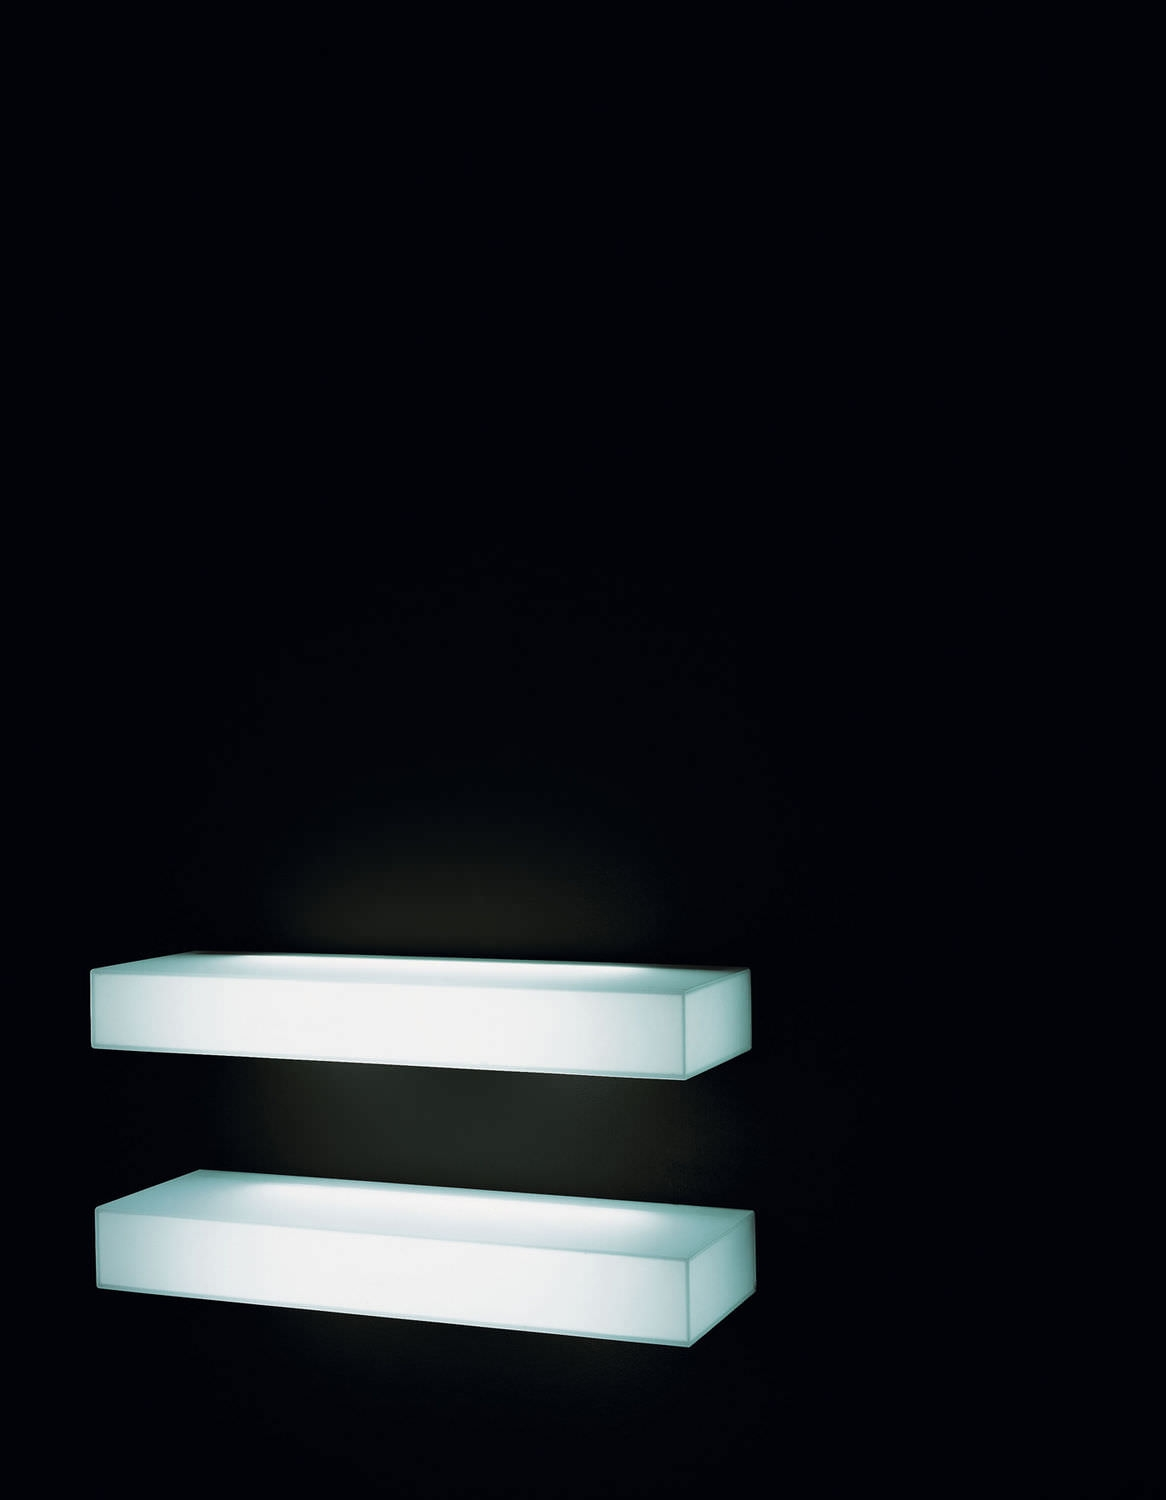 Wall Mounted Shelf Contemporary Glass Illuminated Light Throughout Illuminated Glass Shelves (#11 of 12)